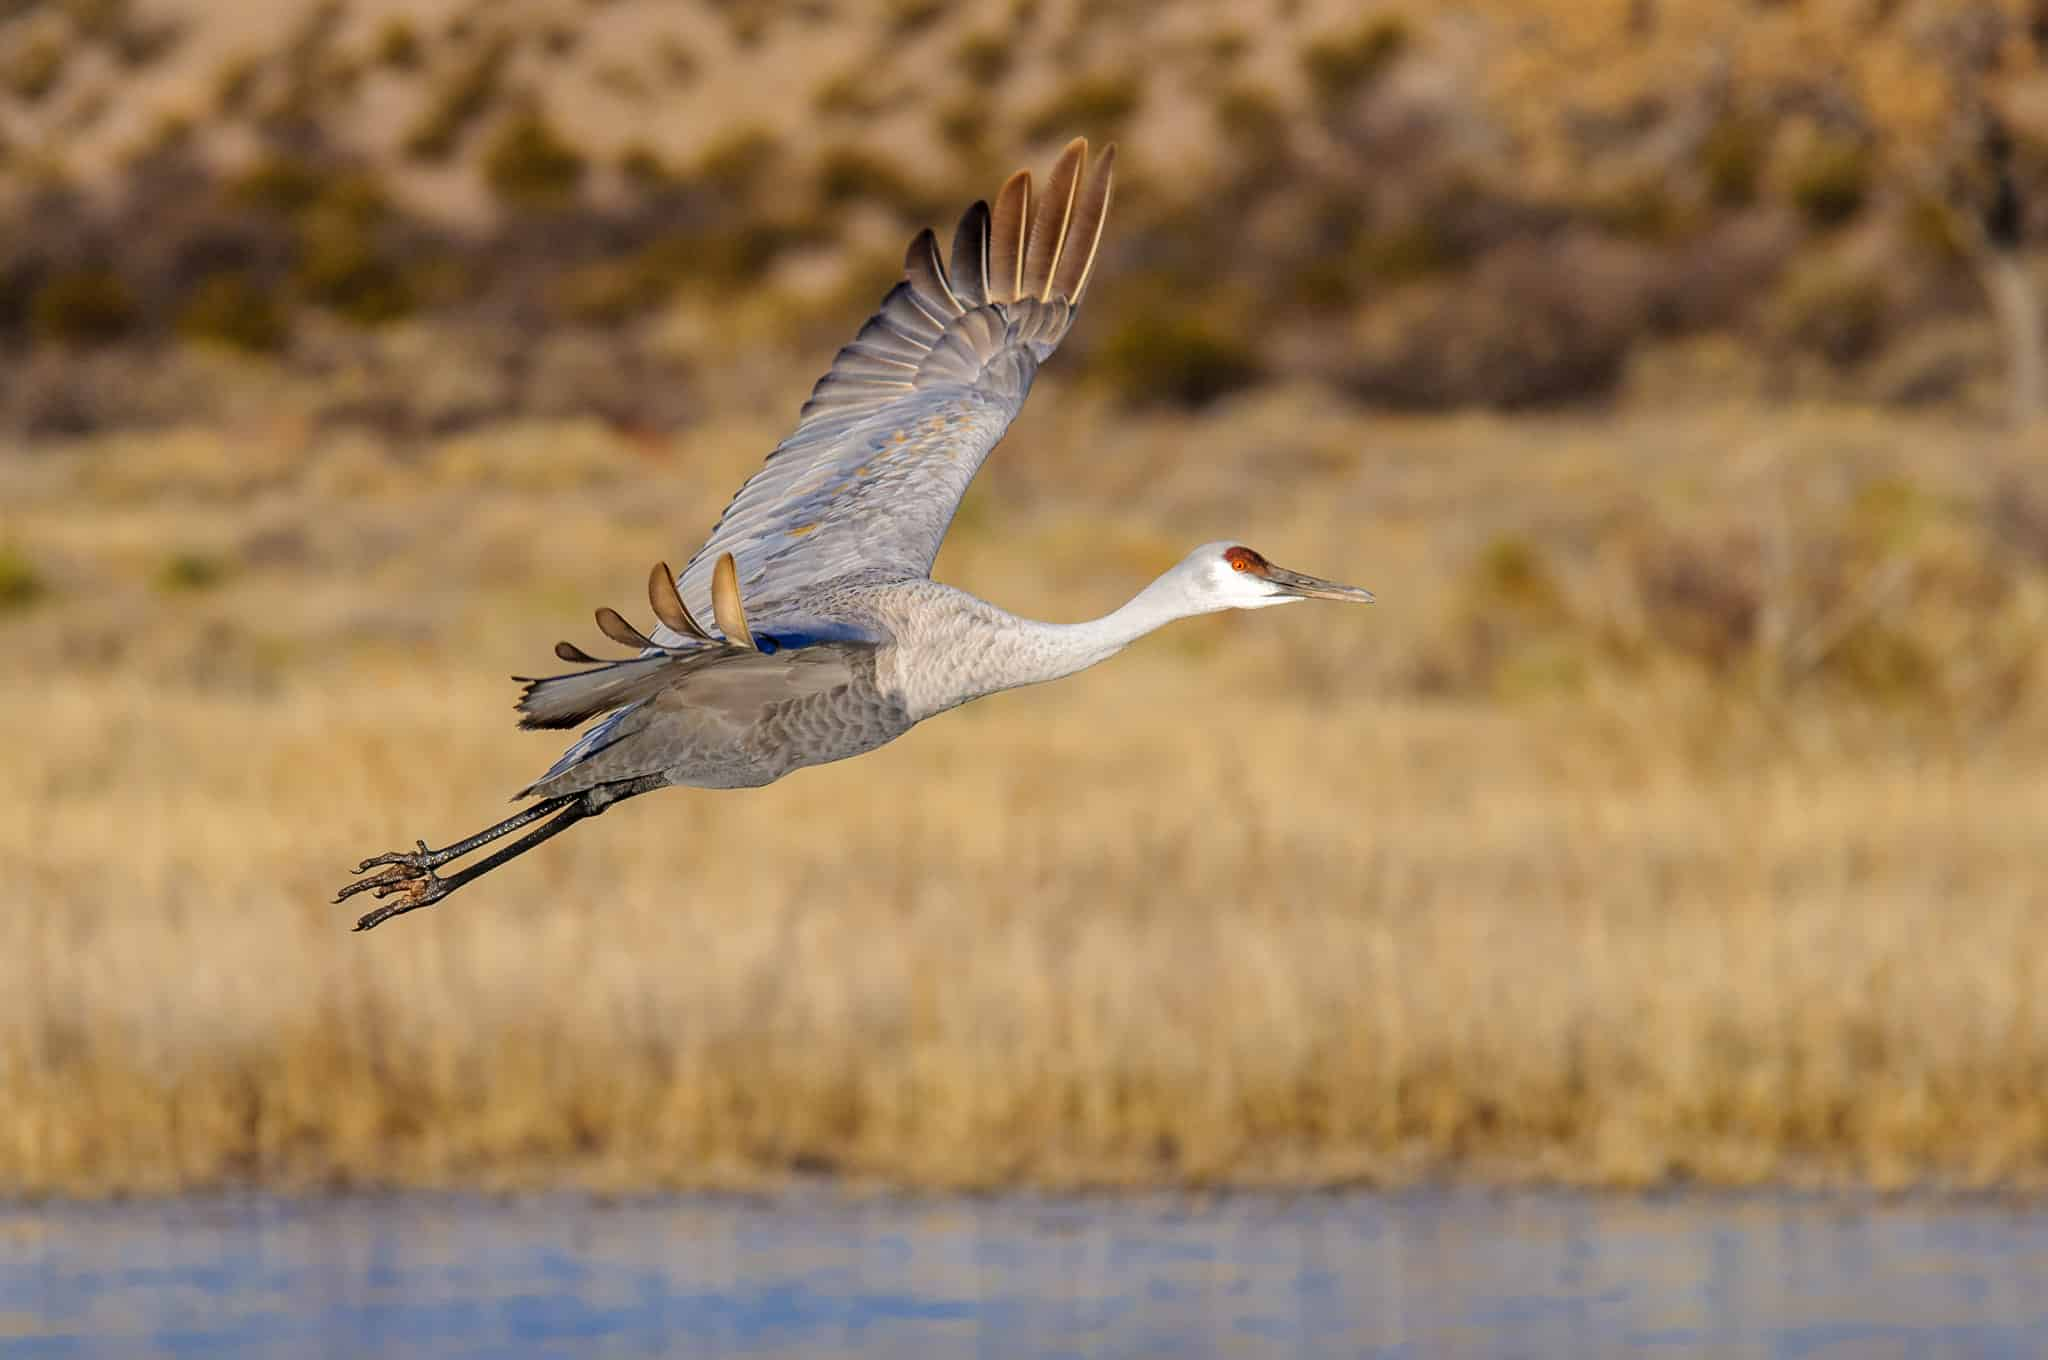 Sandhill Crane makes its morning departure from  the Bosque del Apache National Wildlife Refuge, near Socorro, New Mexico.